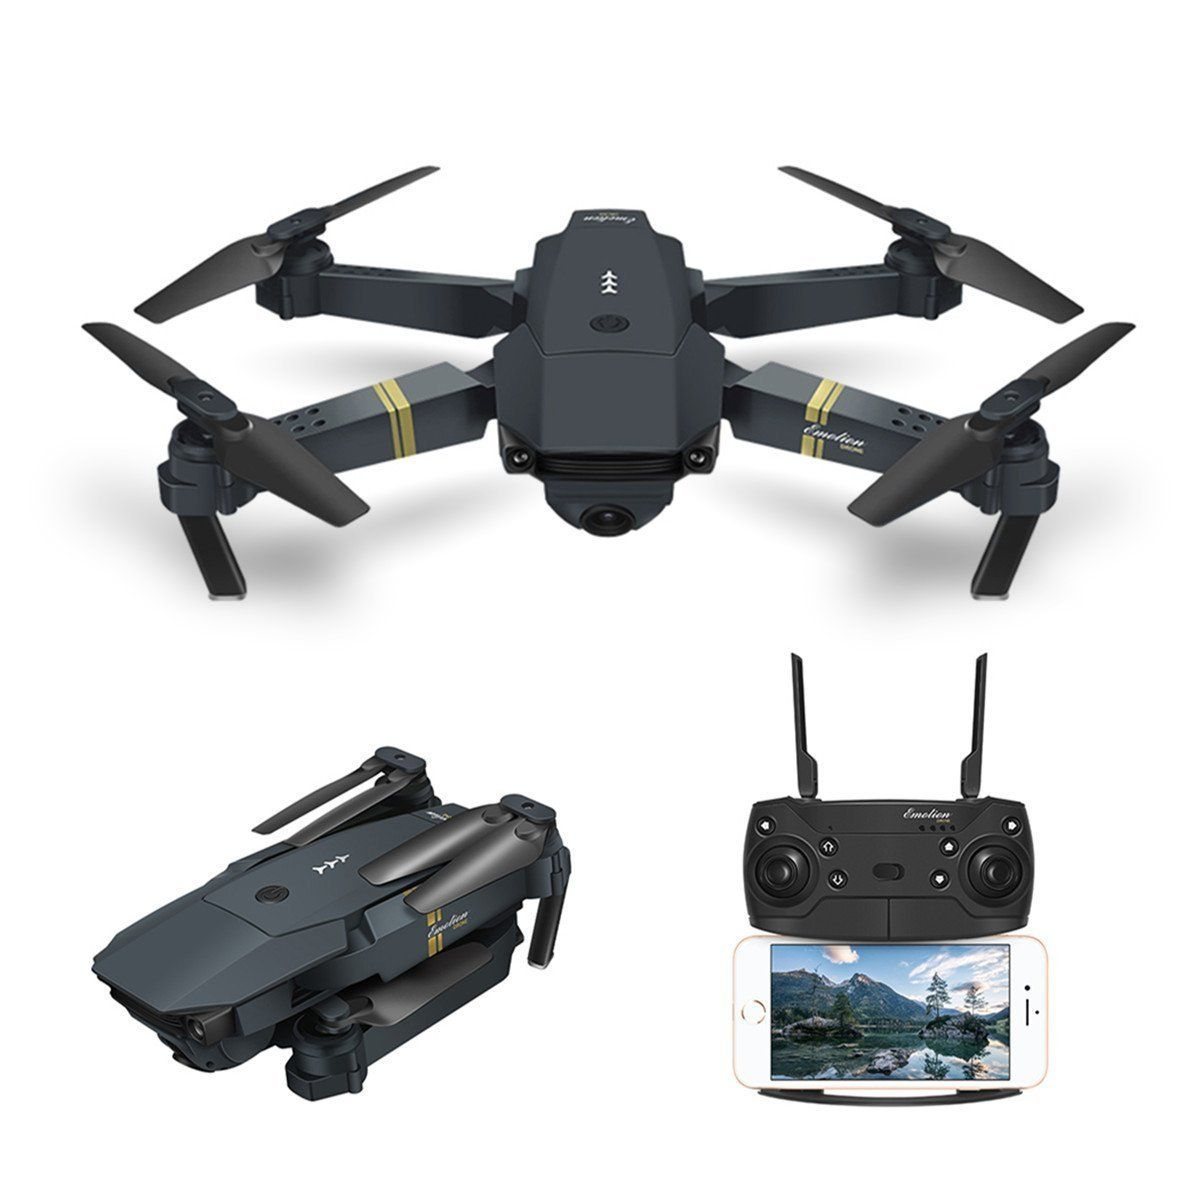 Drone With Camera Live Video Eachine E58 Wifi Fpv Quadcopter With 120 Wide Angle 720p Hd Camera Foldable Drone Rtf Foldable Drone Fpv Quadcopter Drone Camera